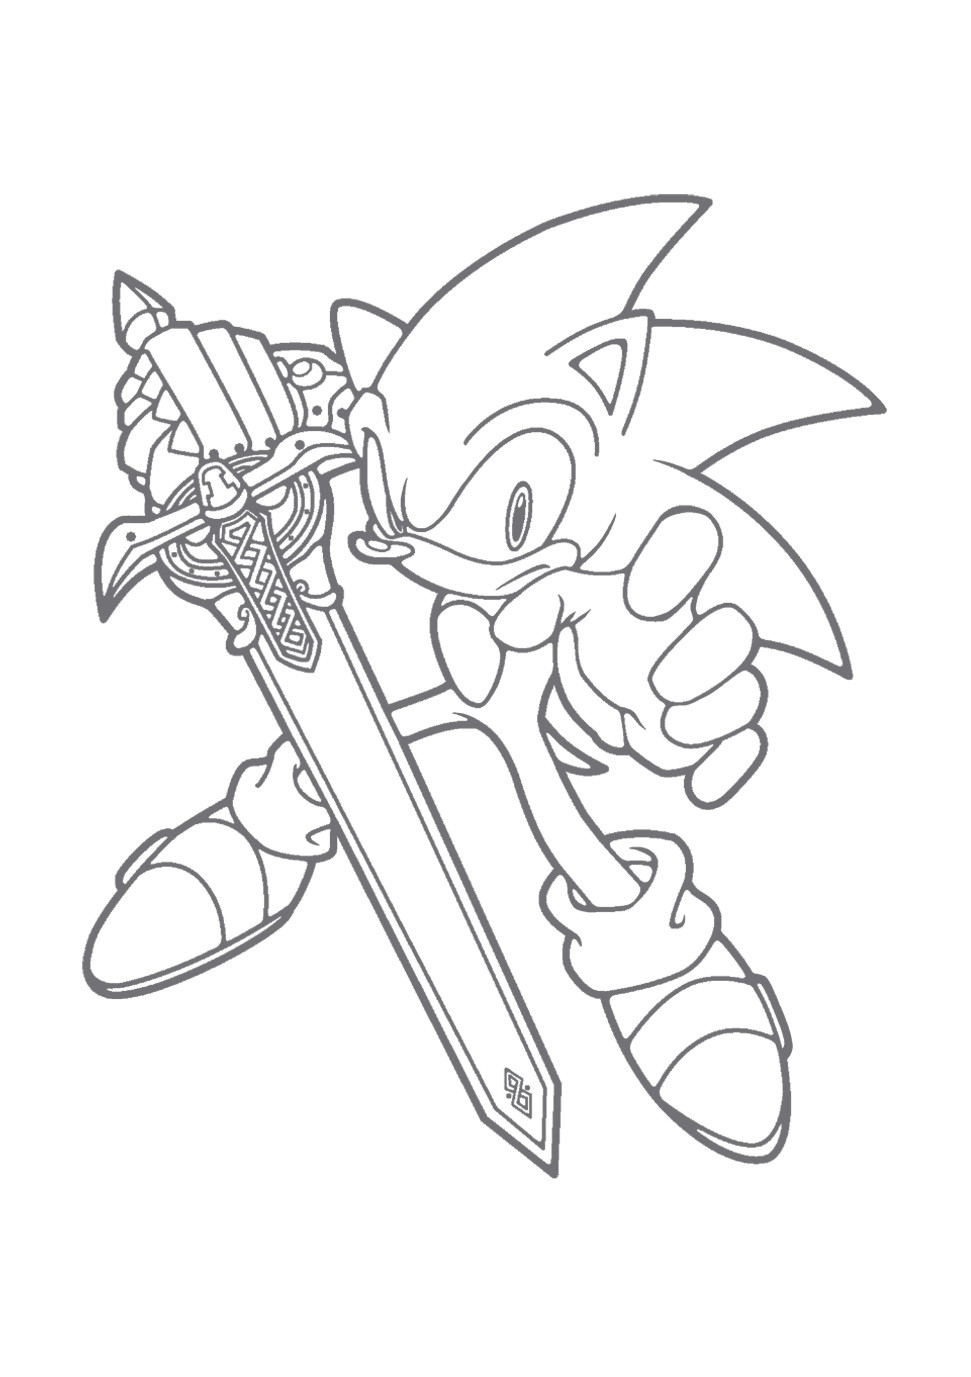 Sonic The Hedgehog Coloring Pages  Free Printable Sonic The Hedgehog Coloring Pages For Kids